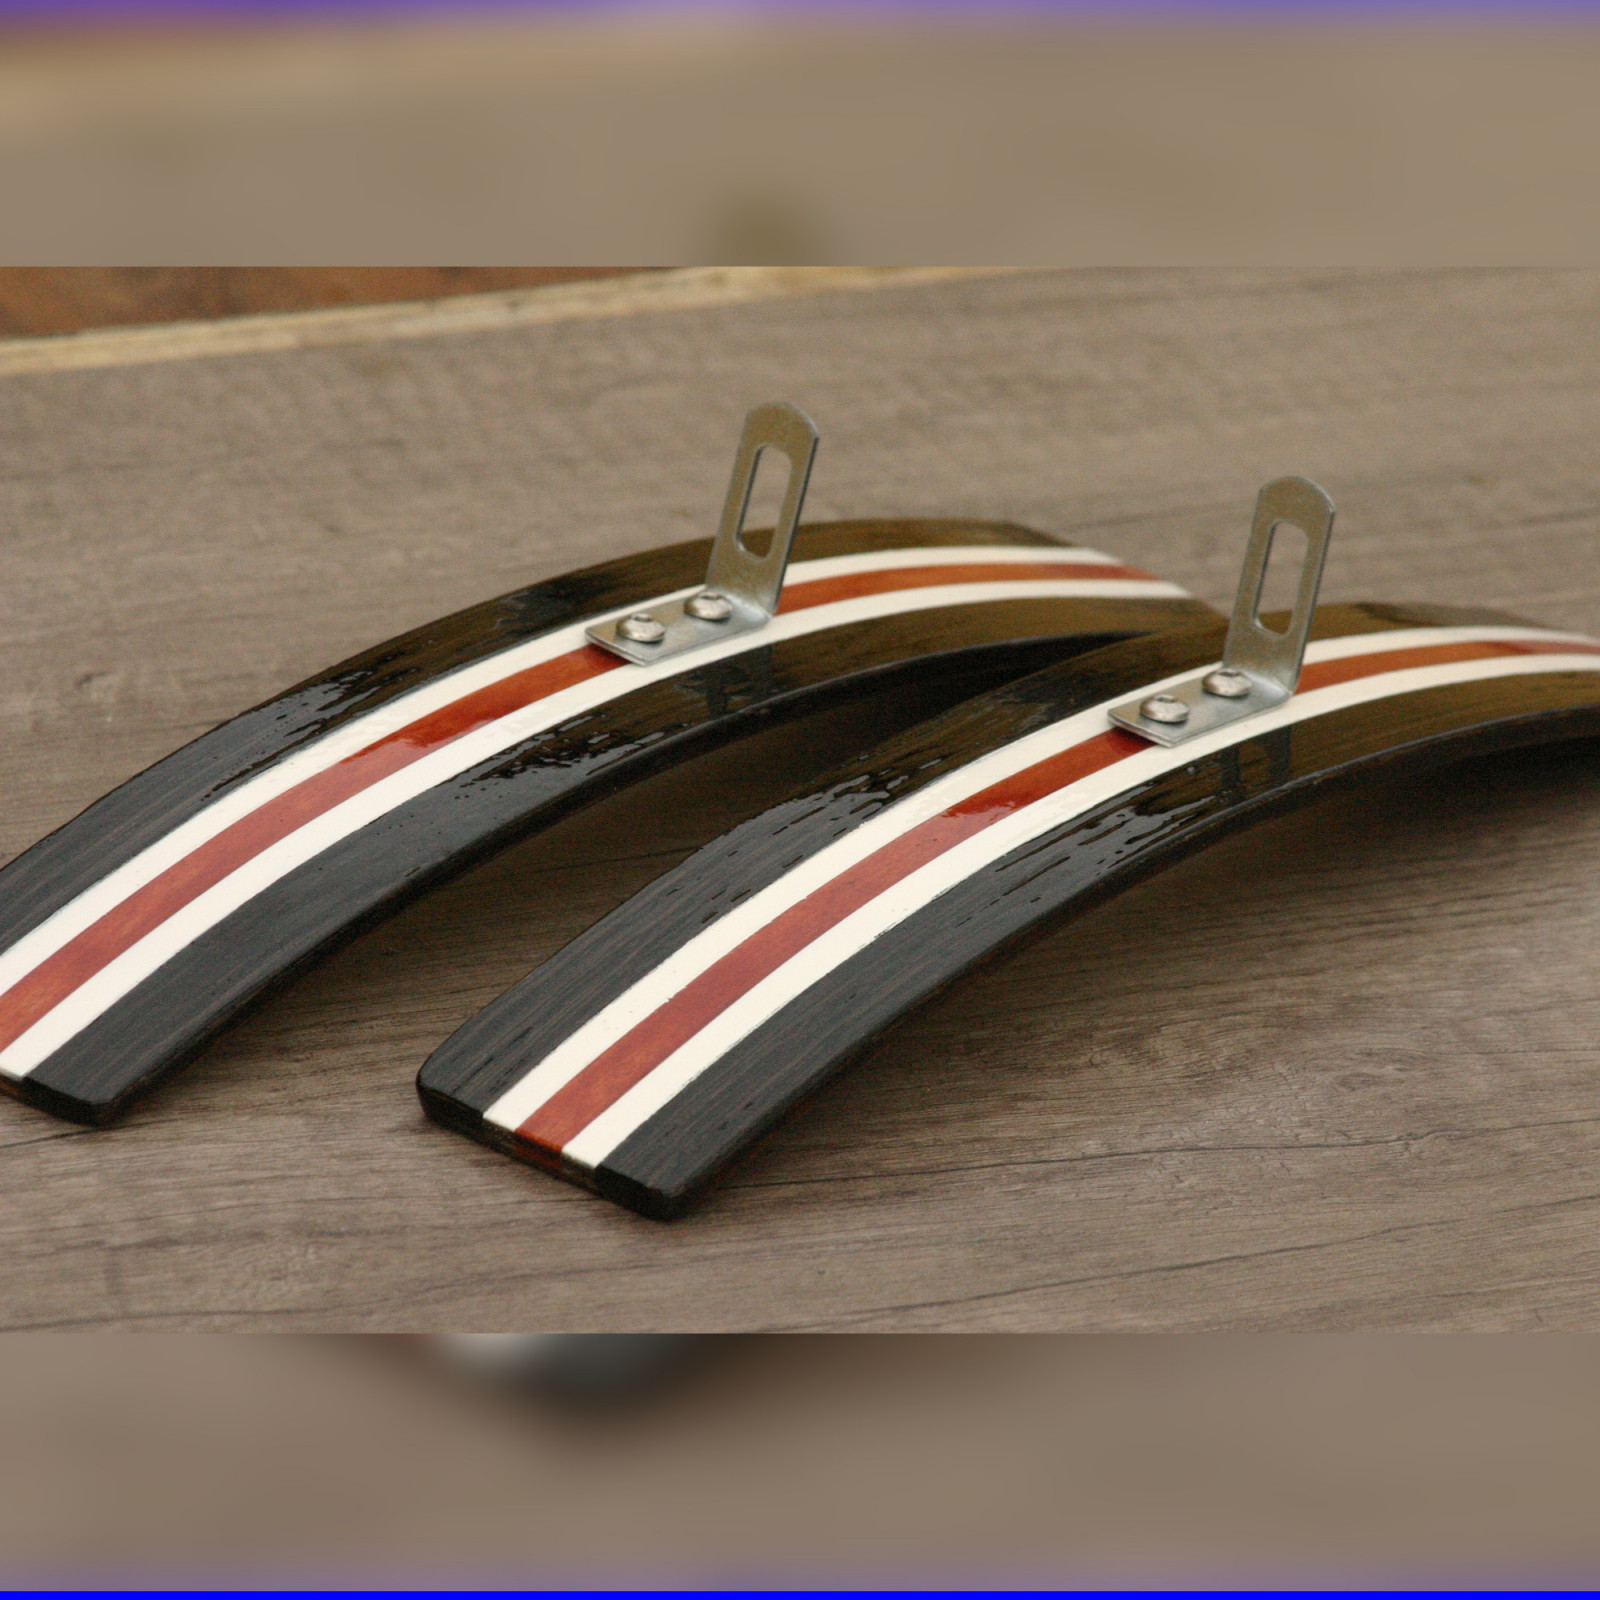 MAIERFENDERS 29S Bicycle Wooden Fenders Mudguards Fiberglass Reinforced Black White Red